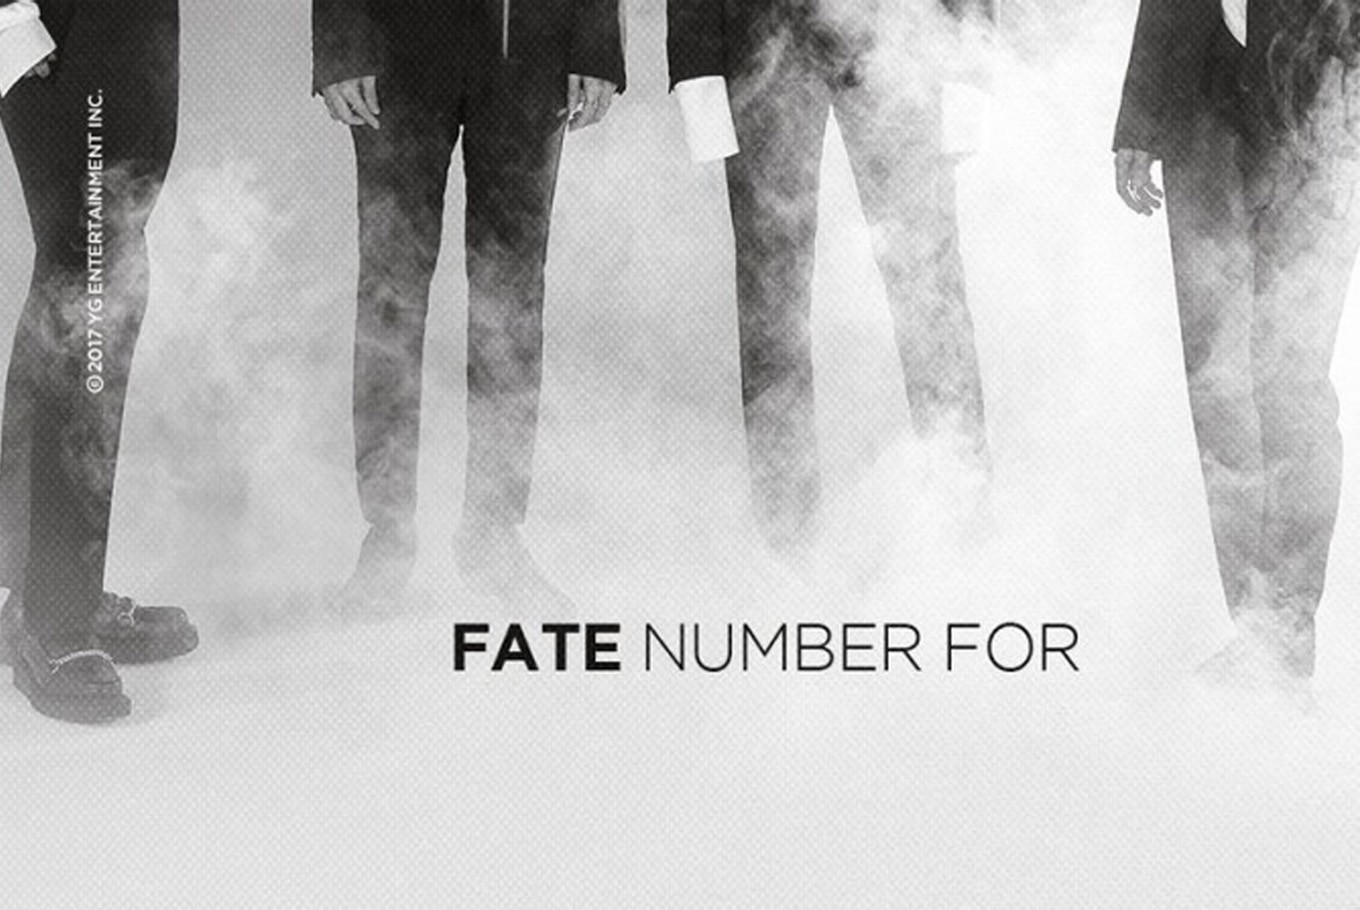 Winner to hold showroom event for upcoming album 'Fate Number For'